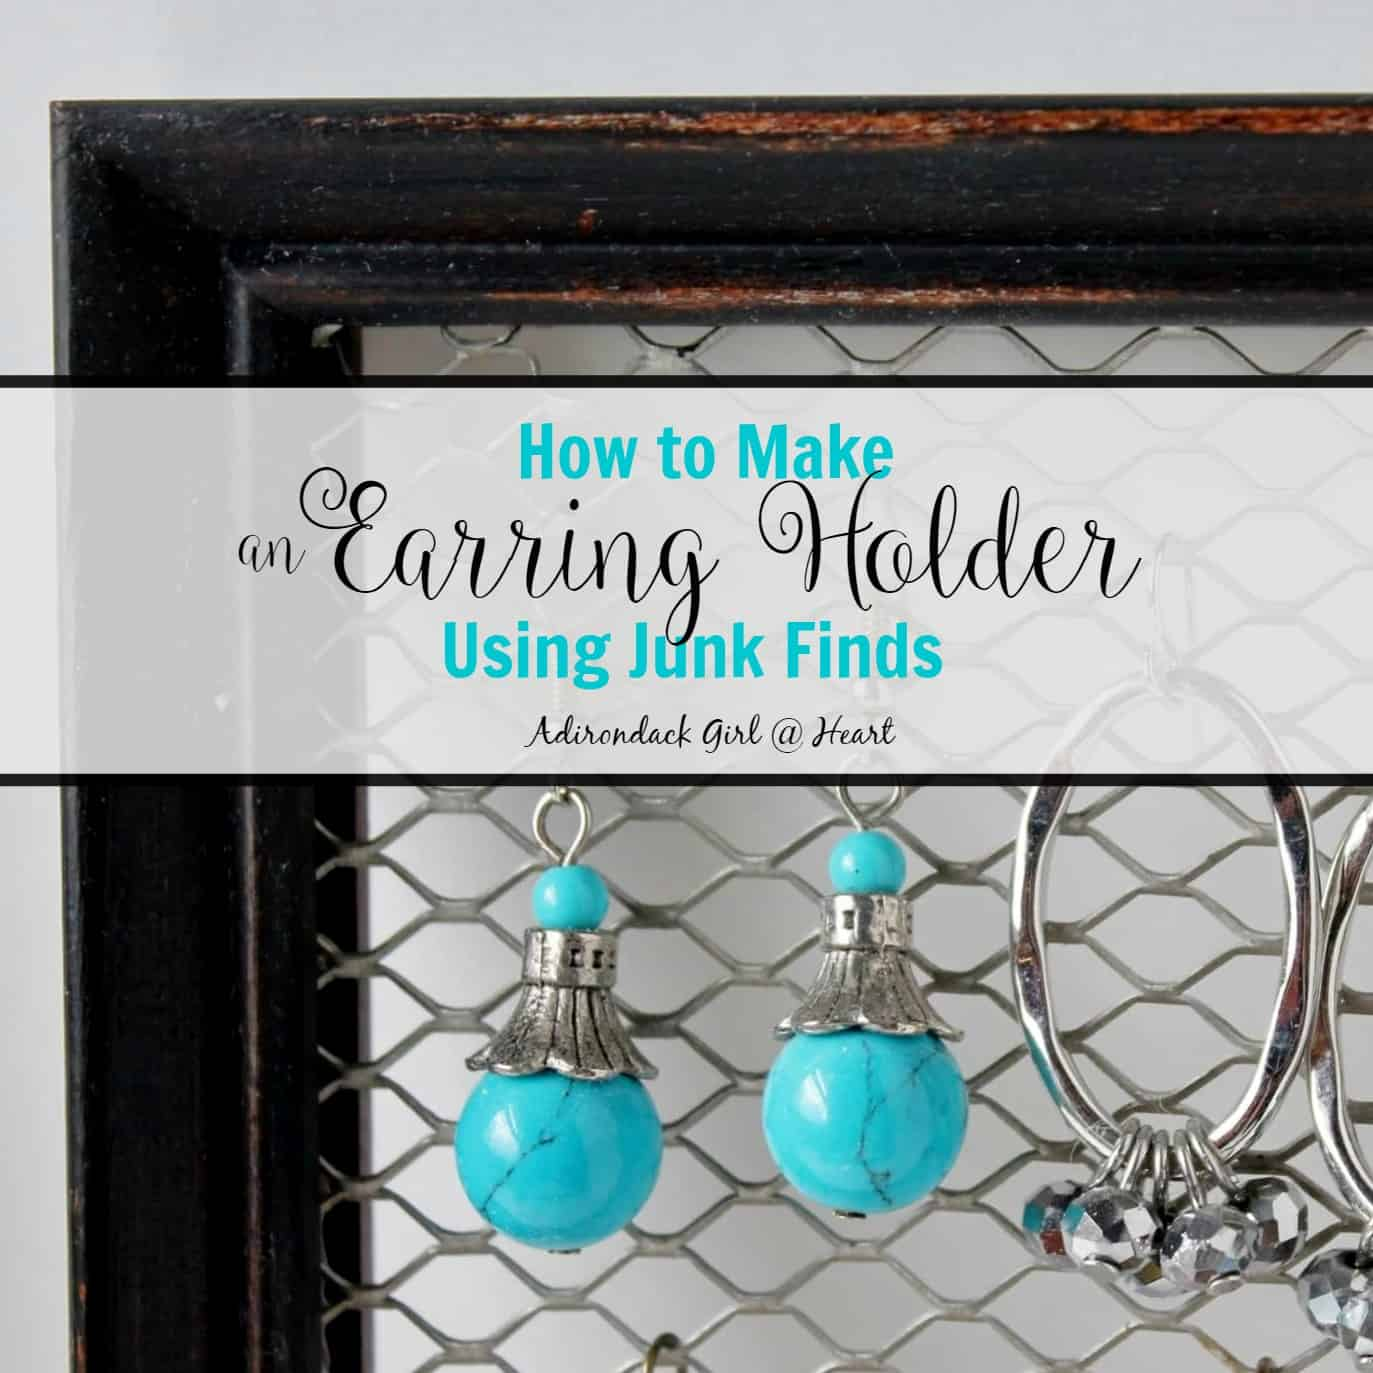 how to make an earring holder out of junk finds